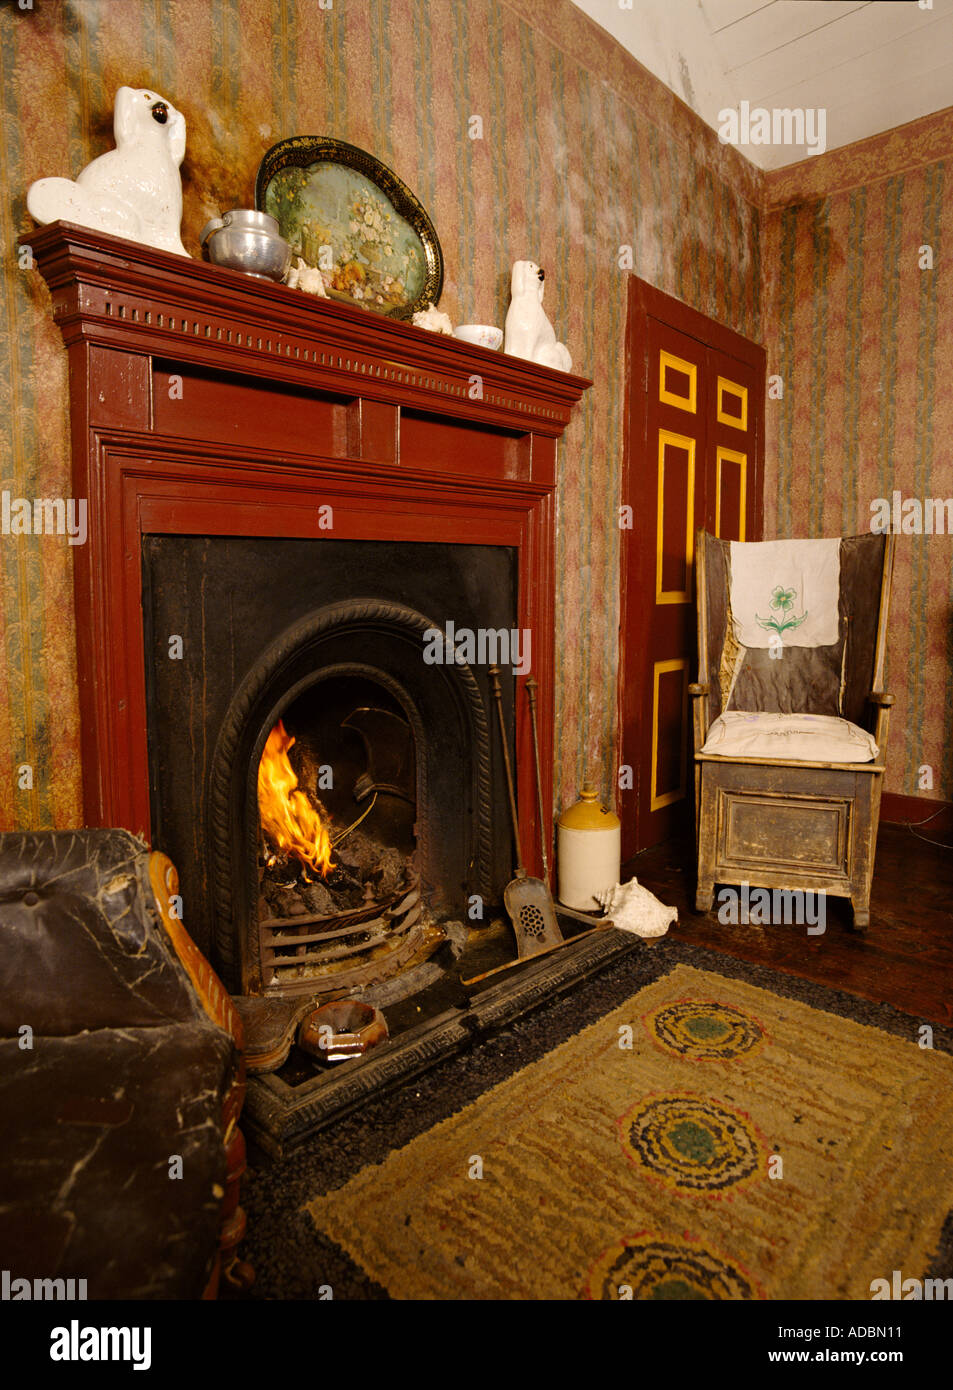 dh Kirbuster Farm Museum BIRSAY ORKNEY Edwardian sittingroom Orkney chair fireplace living room interior home - Stock Image